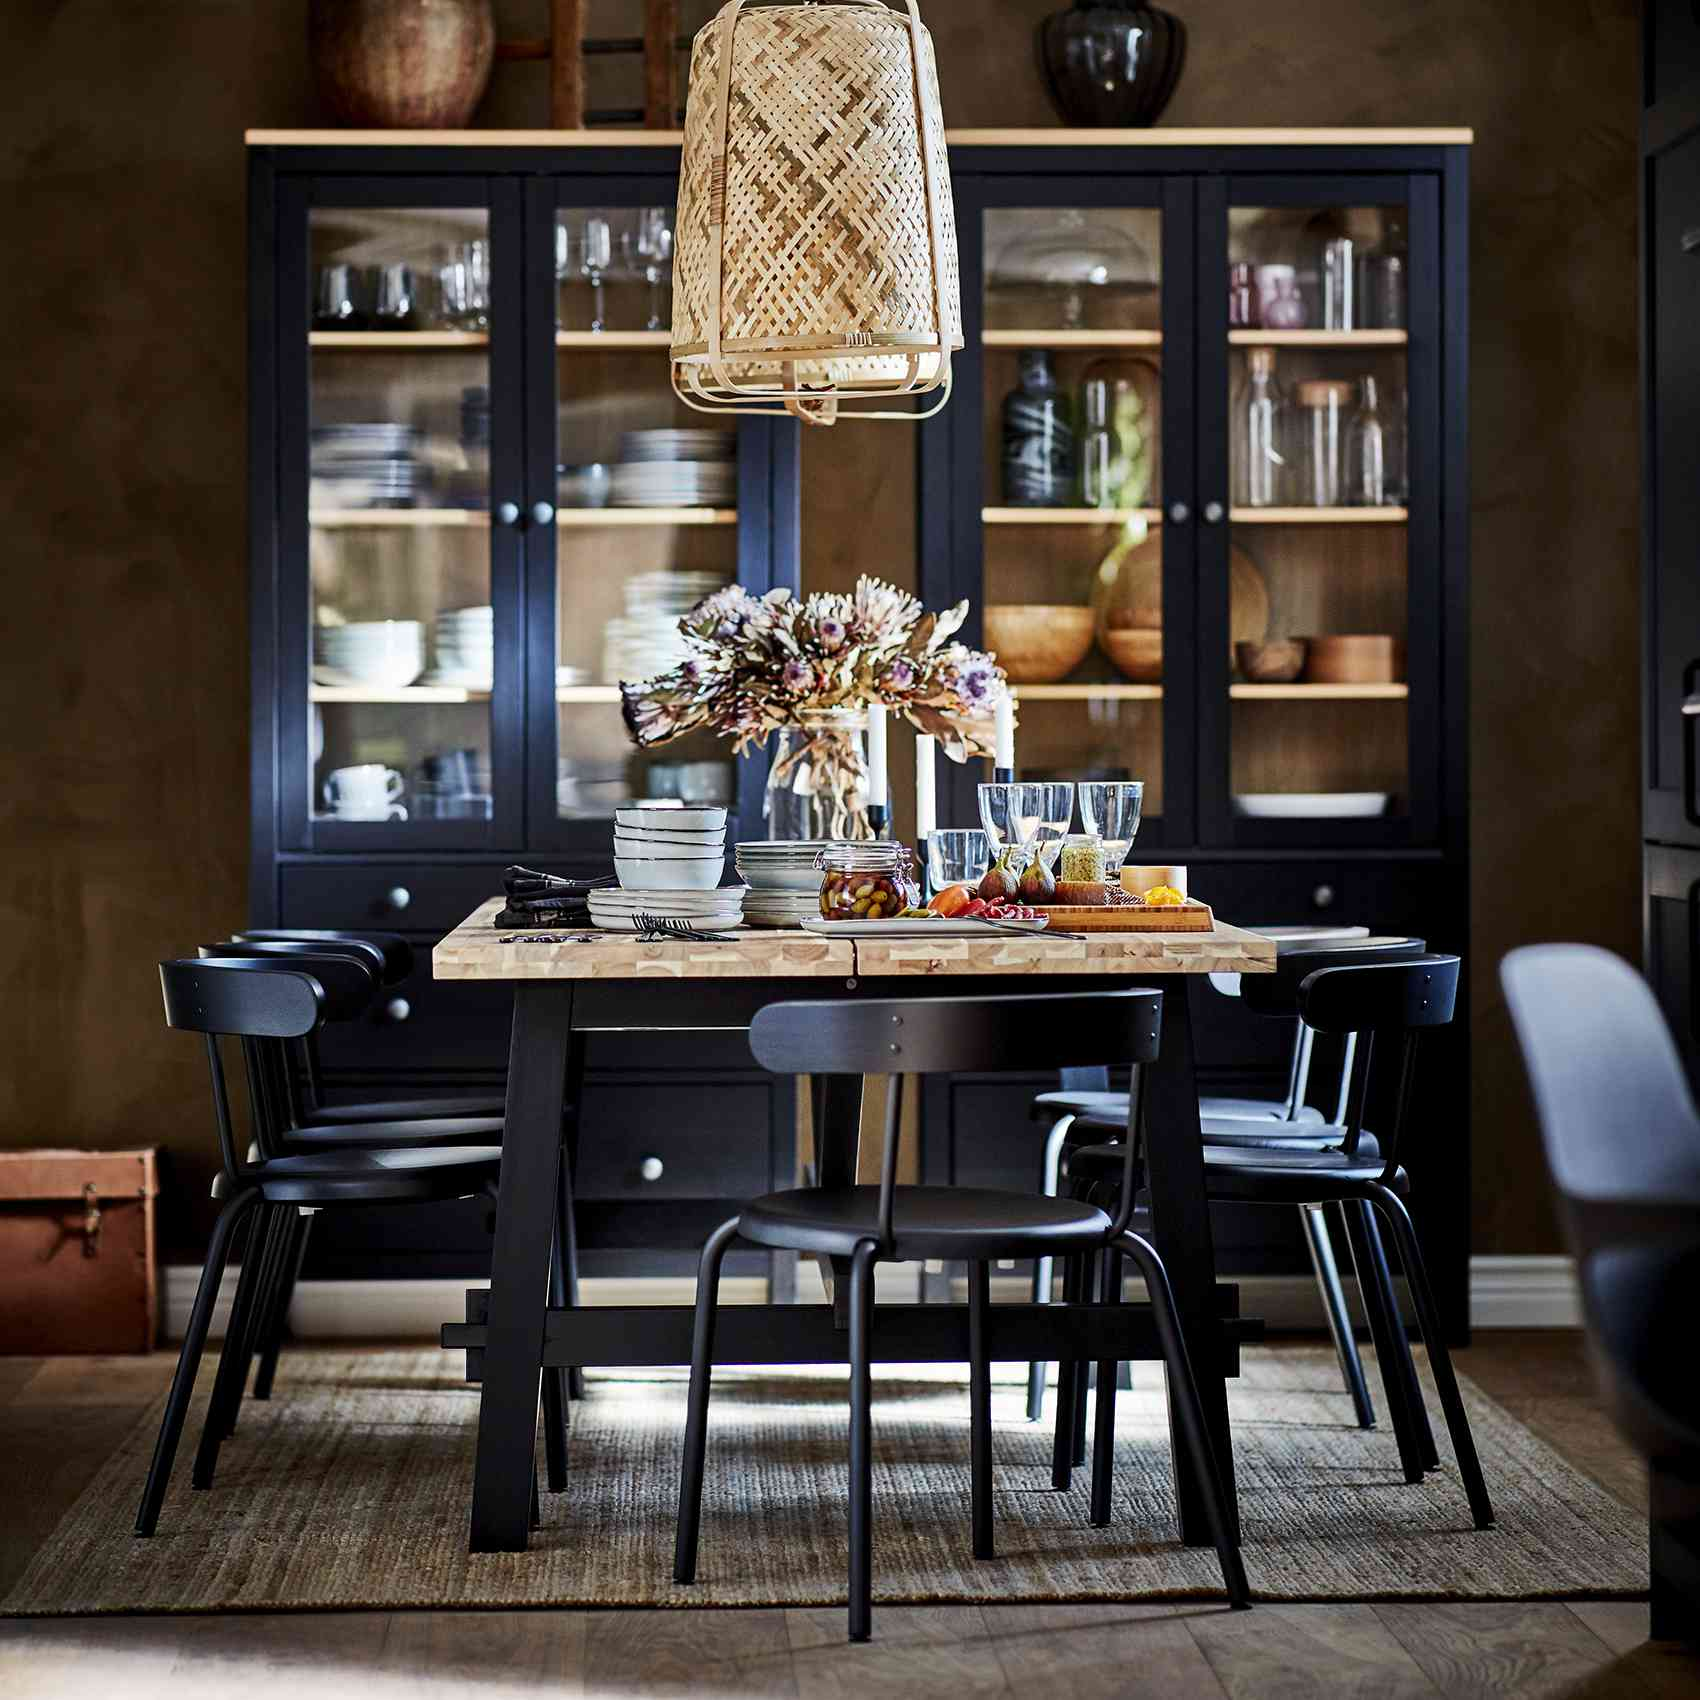 dining room with black chairs and rattan lighting